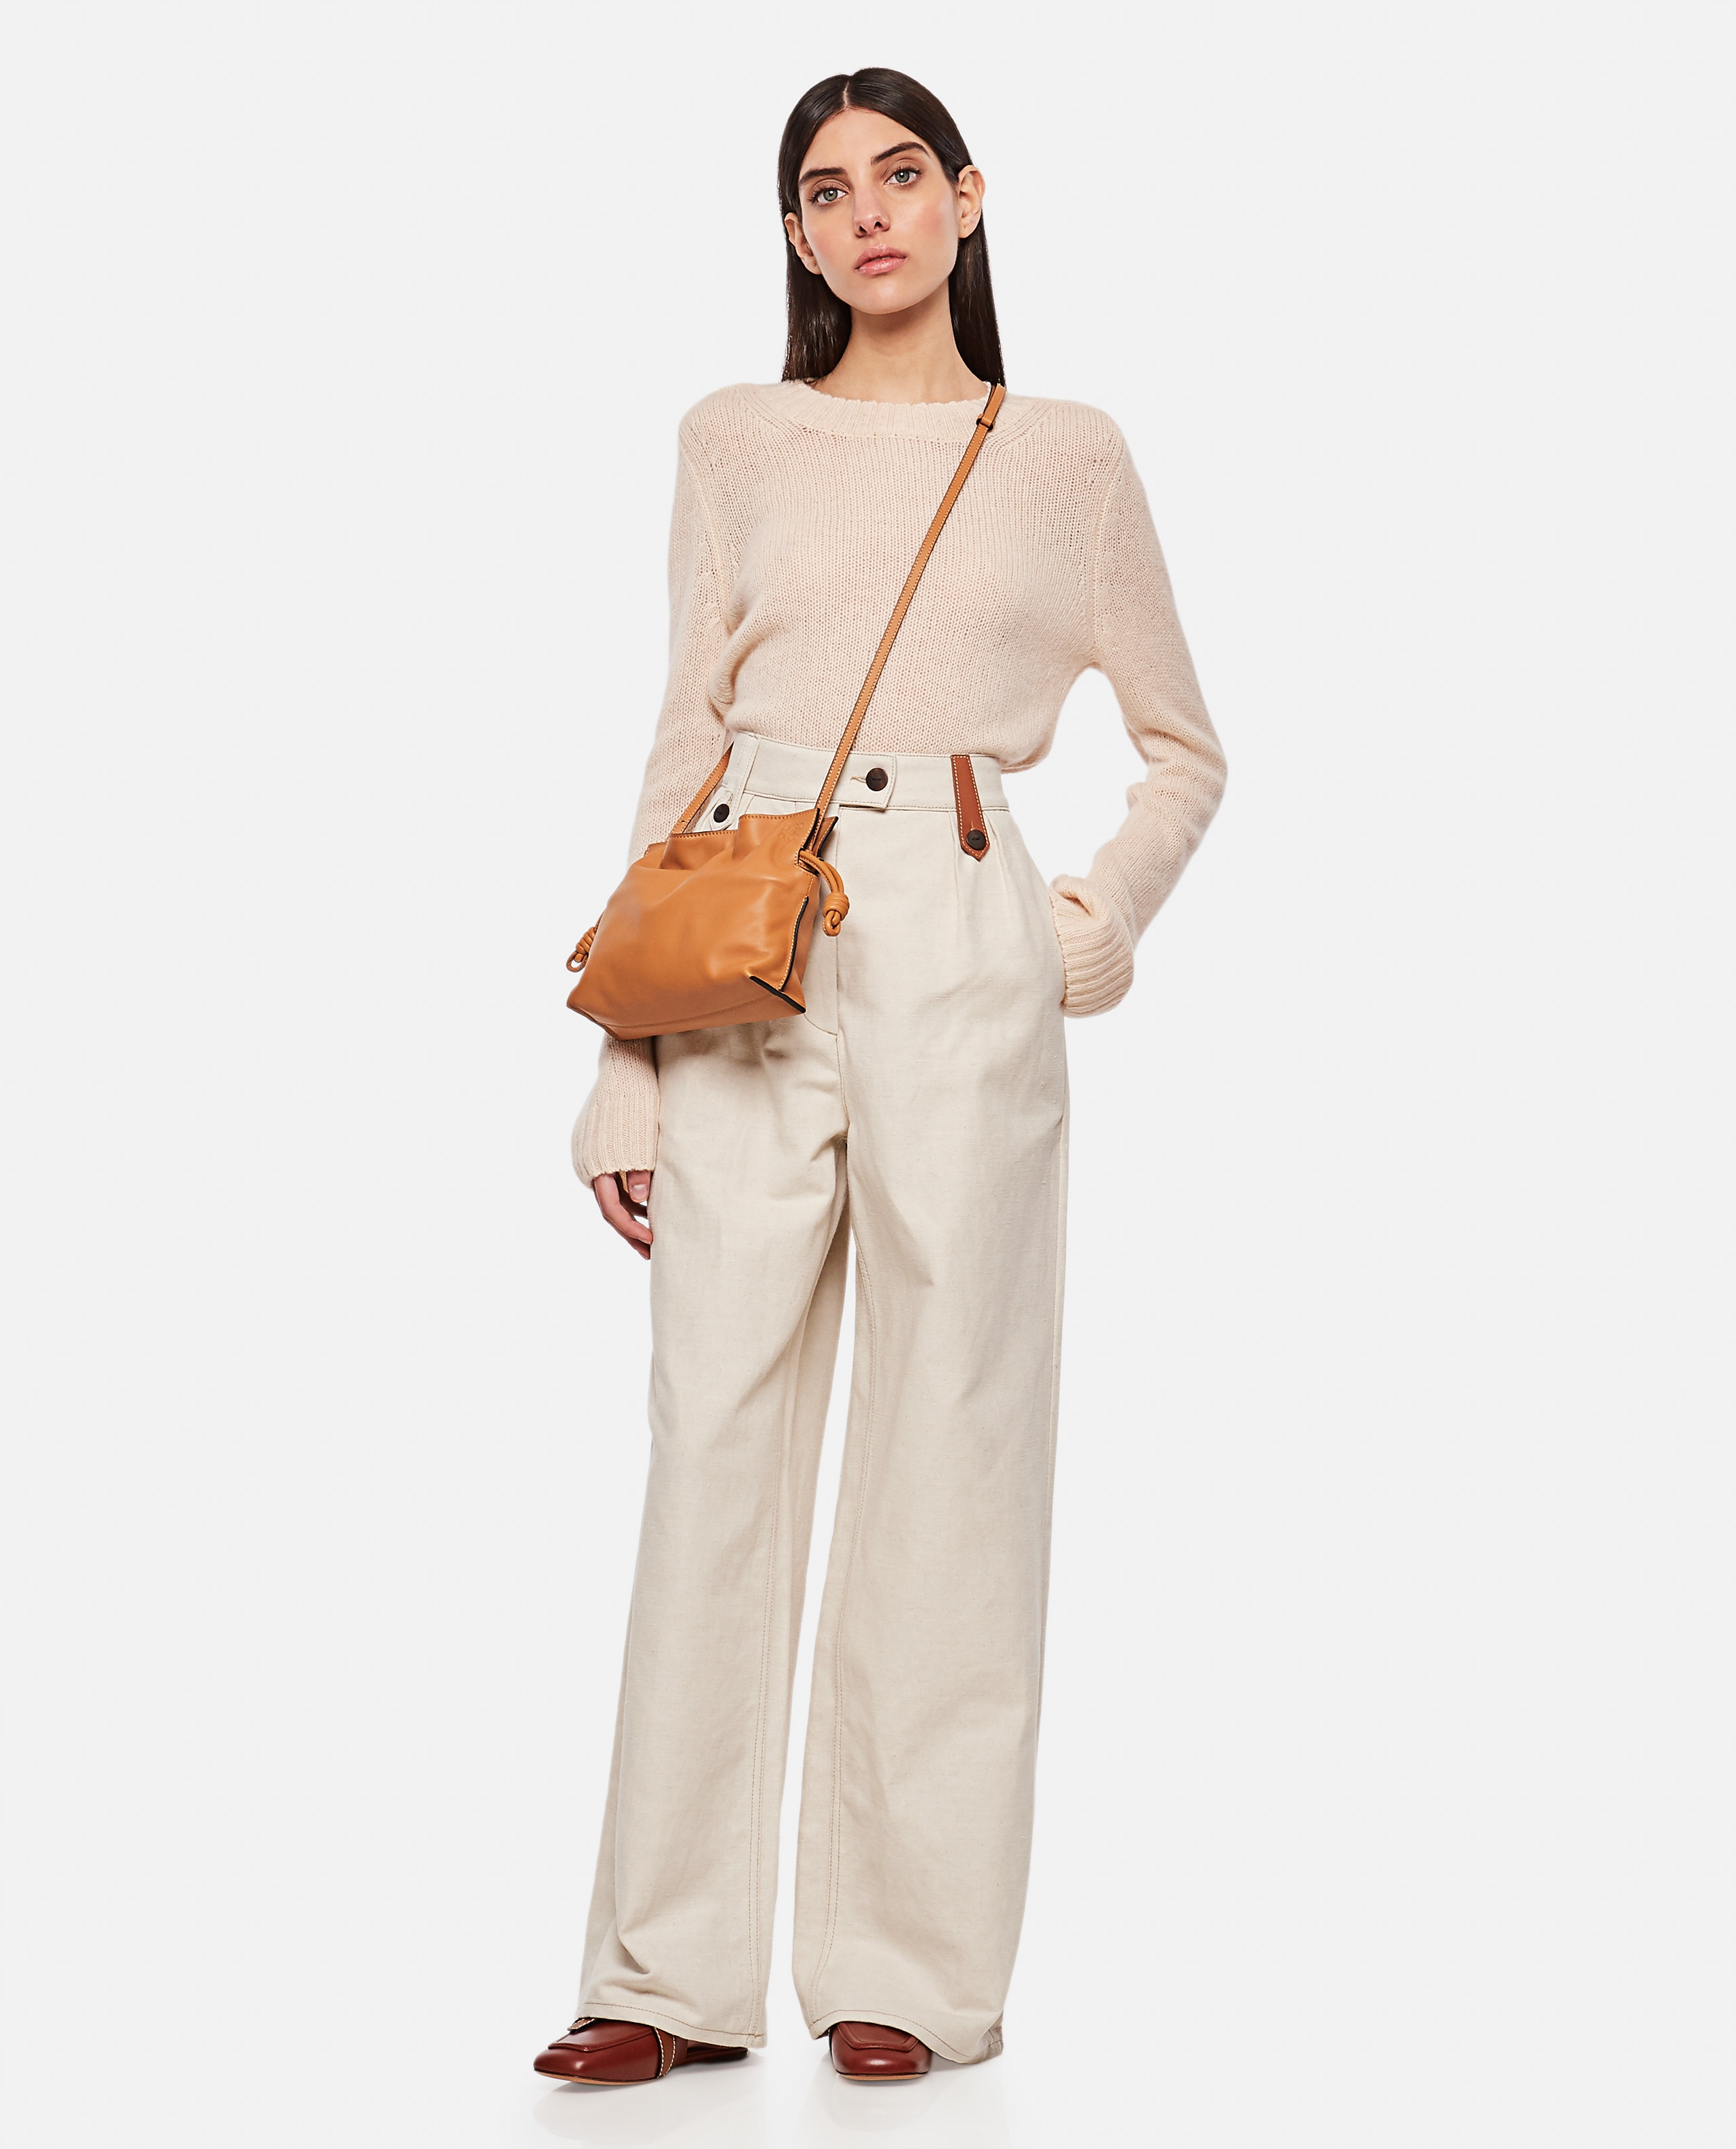 Flared trousers in cotton and linen Women Loewe 000320420046914 2